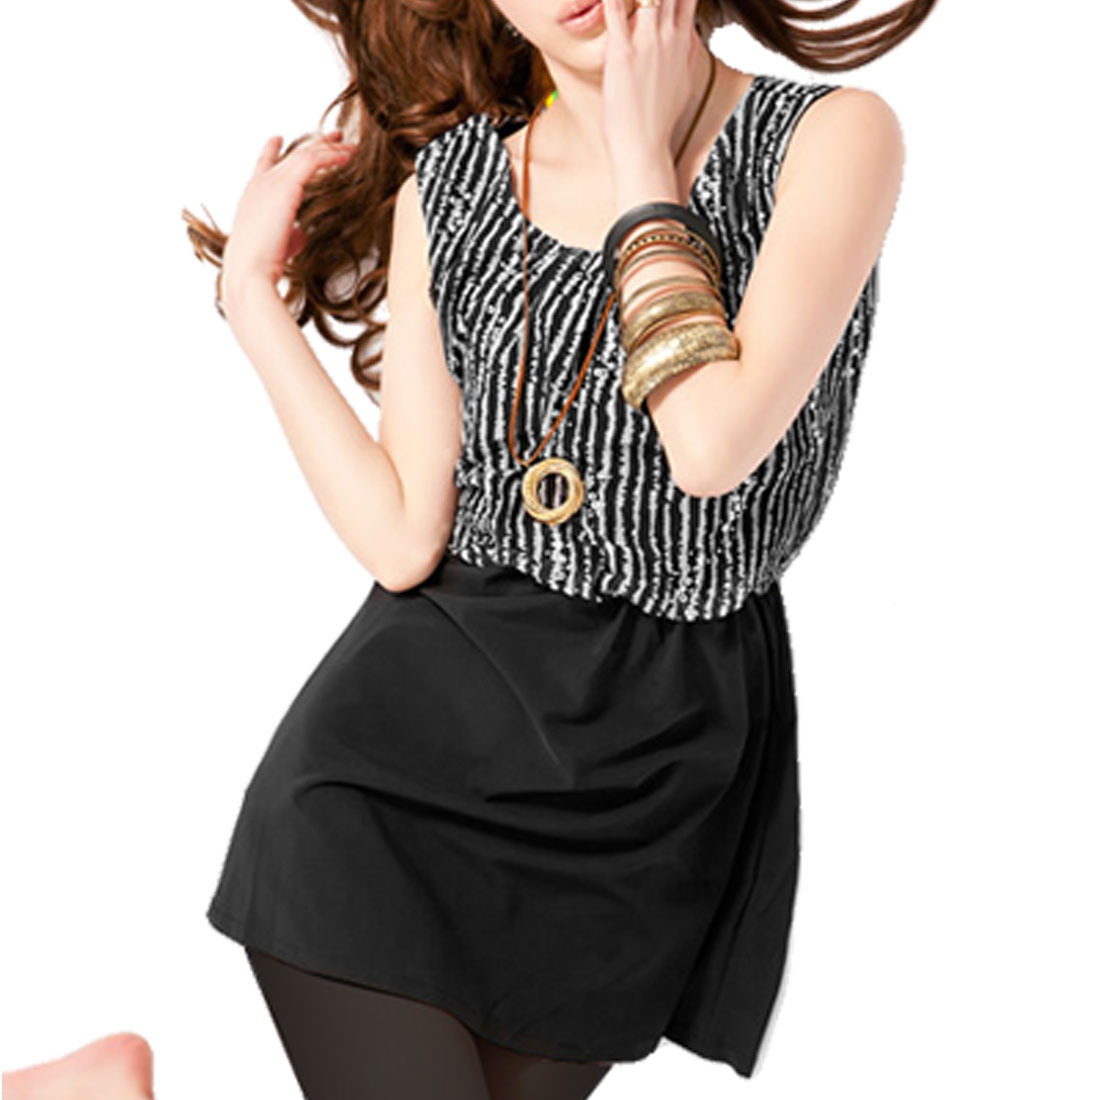 Women Seqiun Decor White Striped Elastic Waist Black Tank Top XS